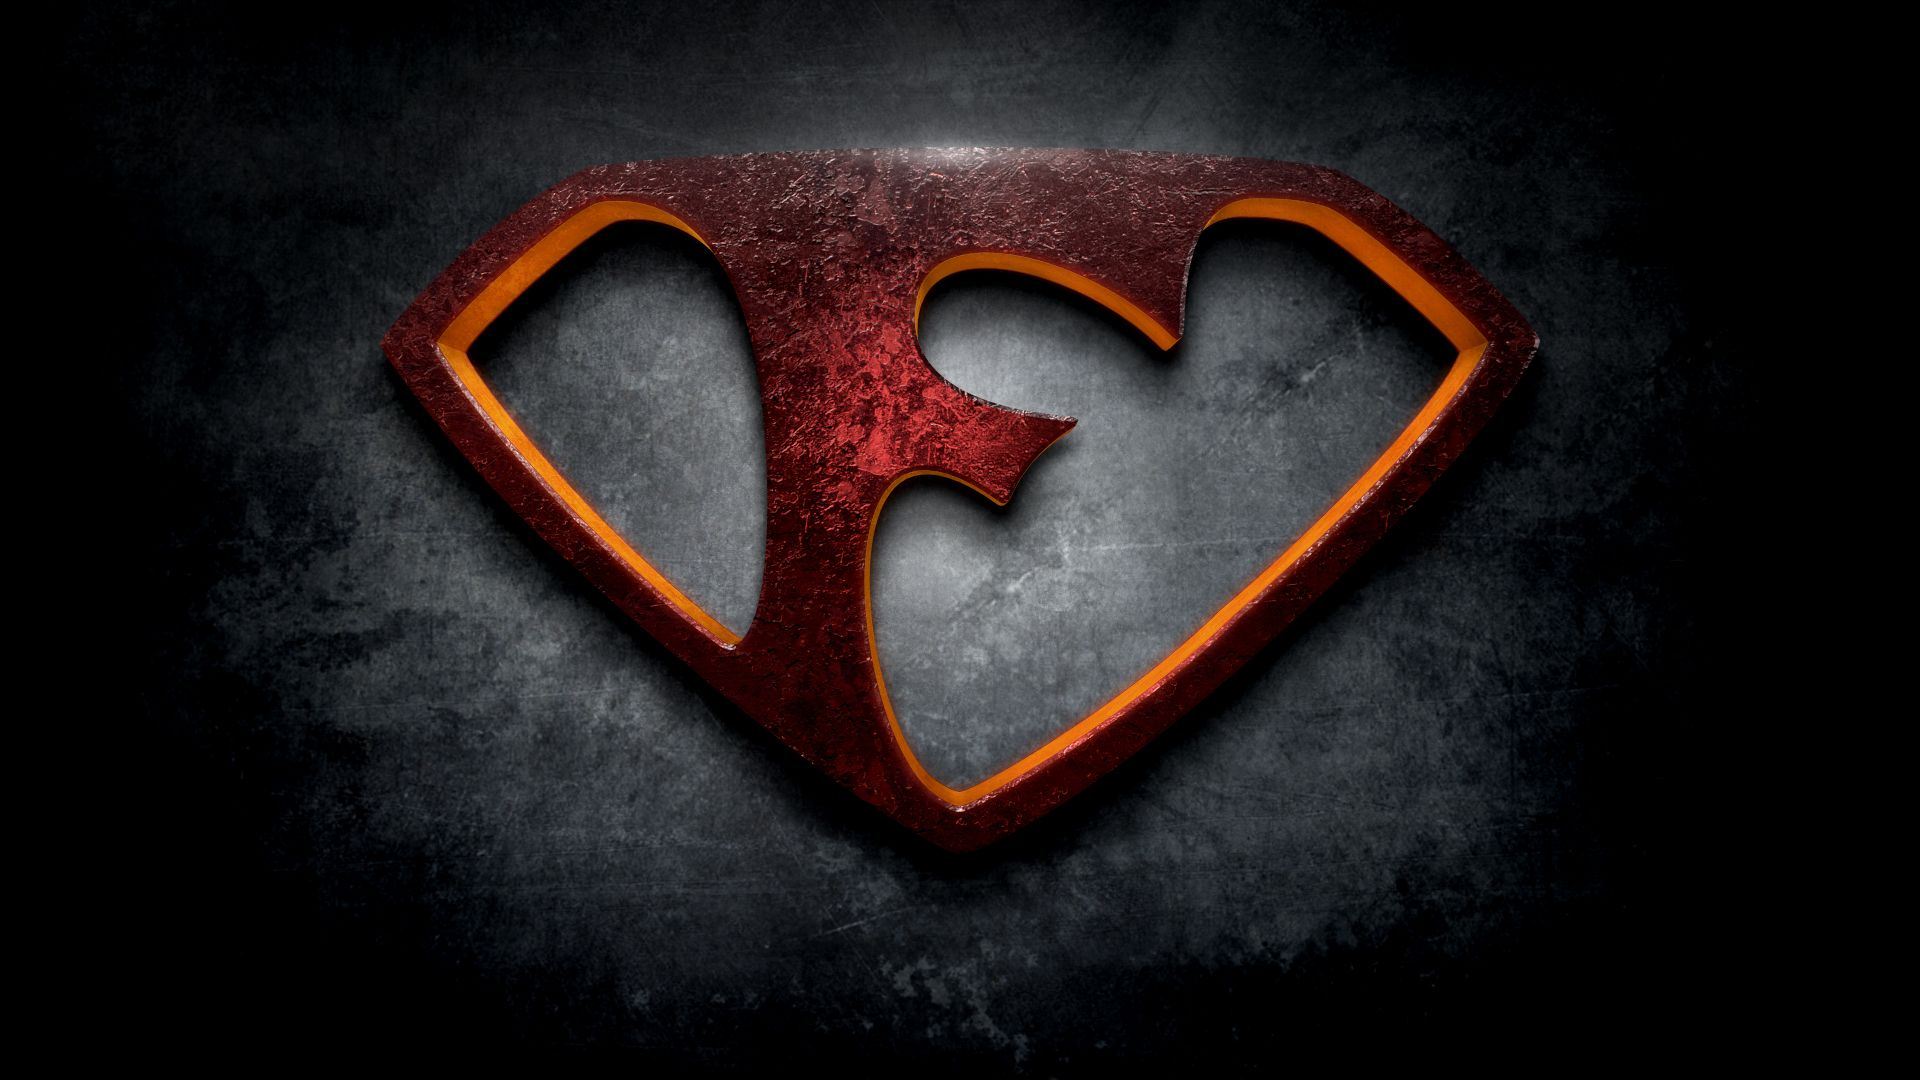 Download free f letter wallpapers for your mobile phone